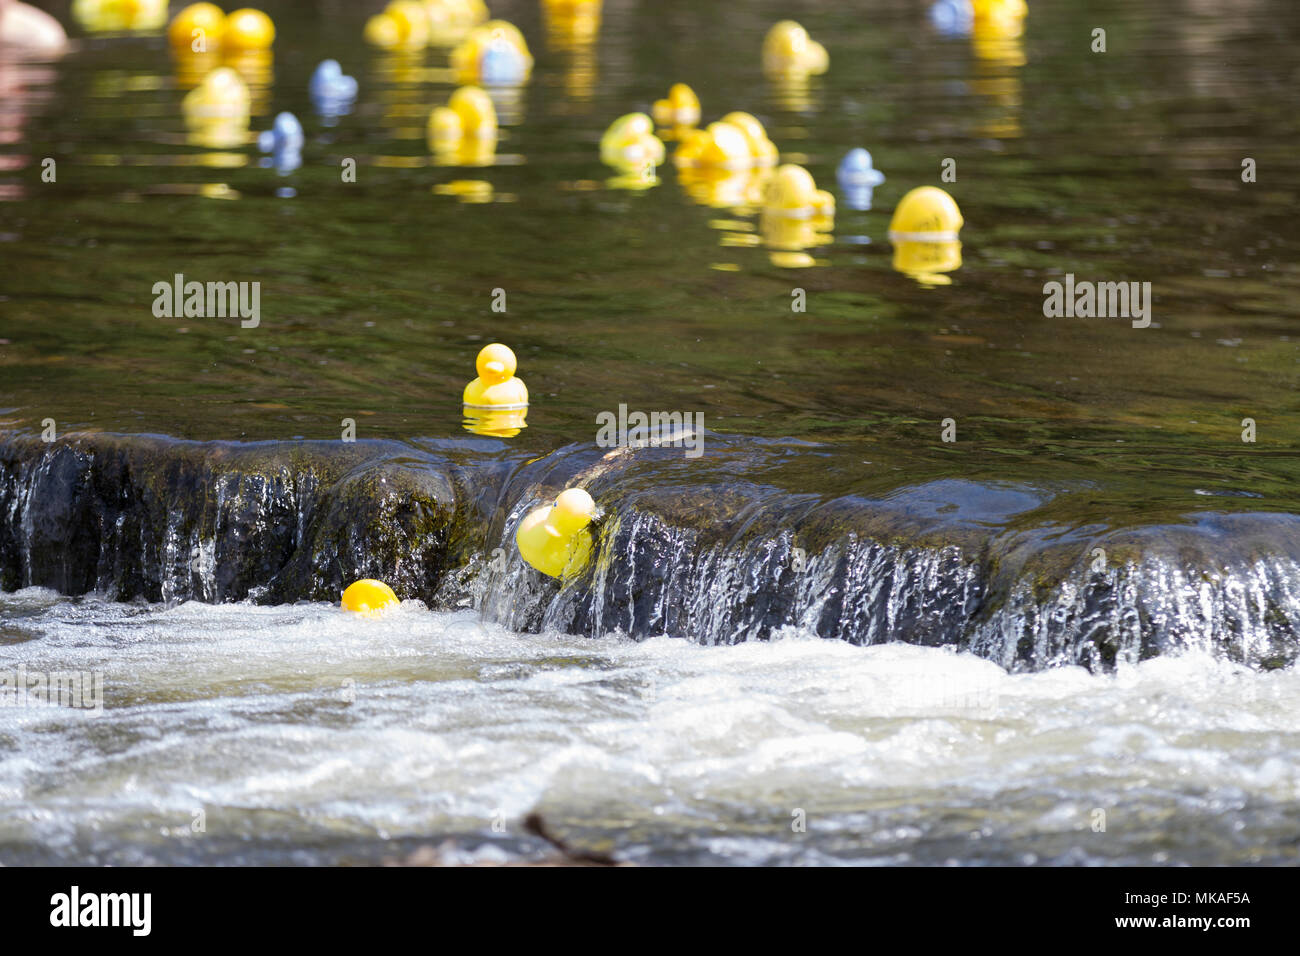 Richmond, North Yorkshire, UK. Monday 7th May, 2018. Organised by ...